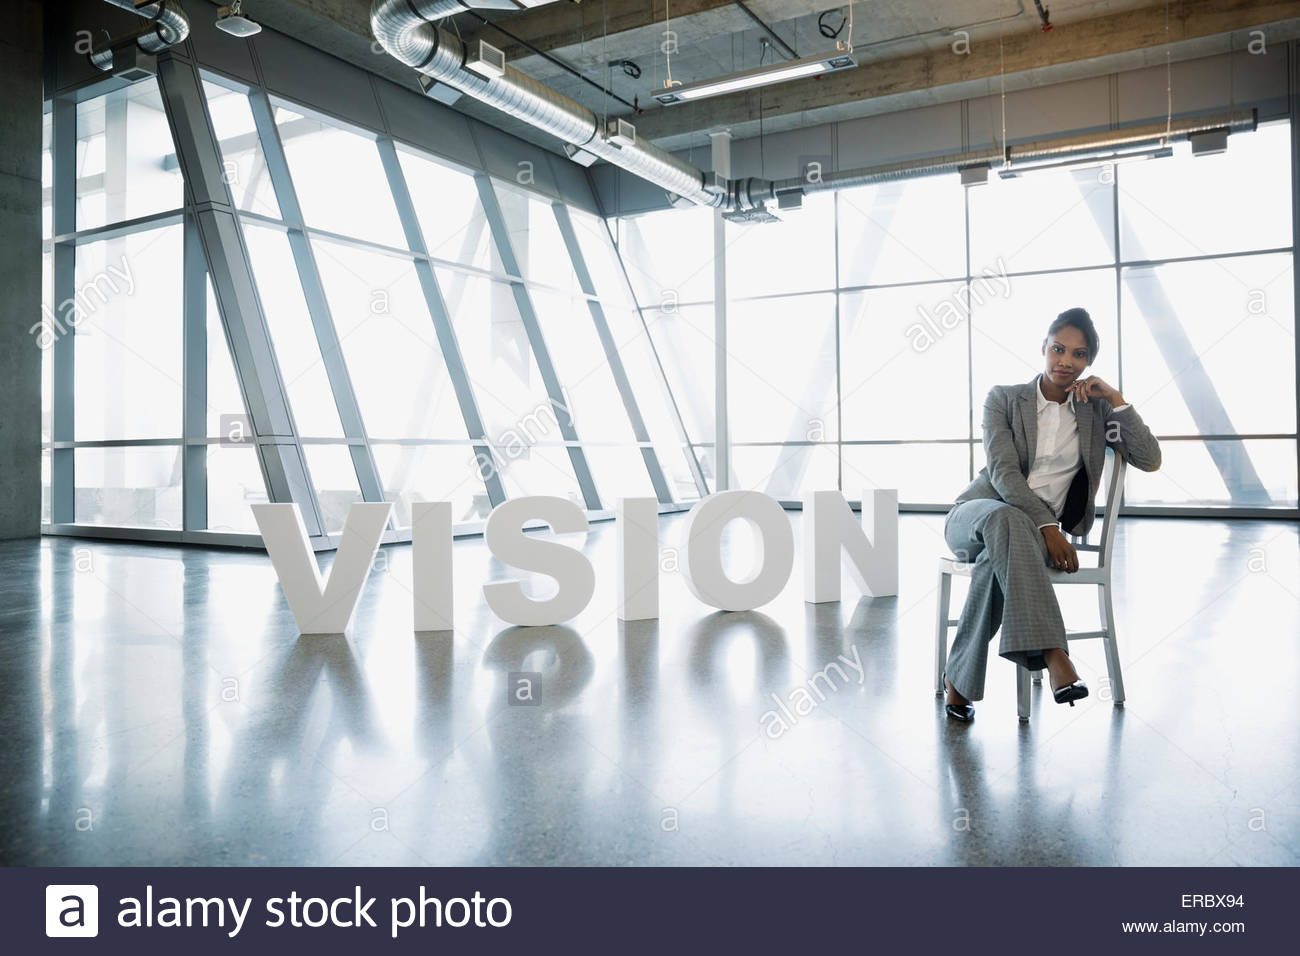 Portrait businesswoman sitting next to 'Vision' letters - Stock Image